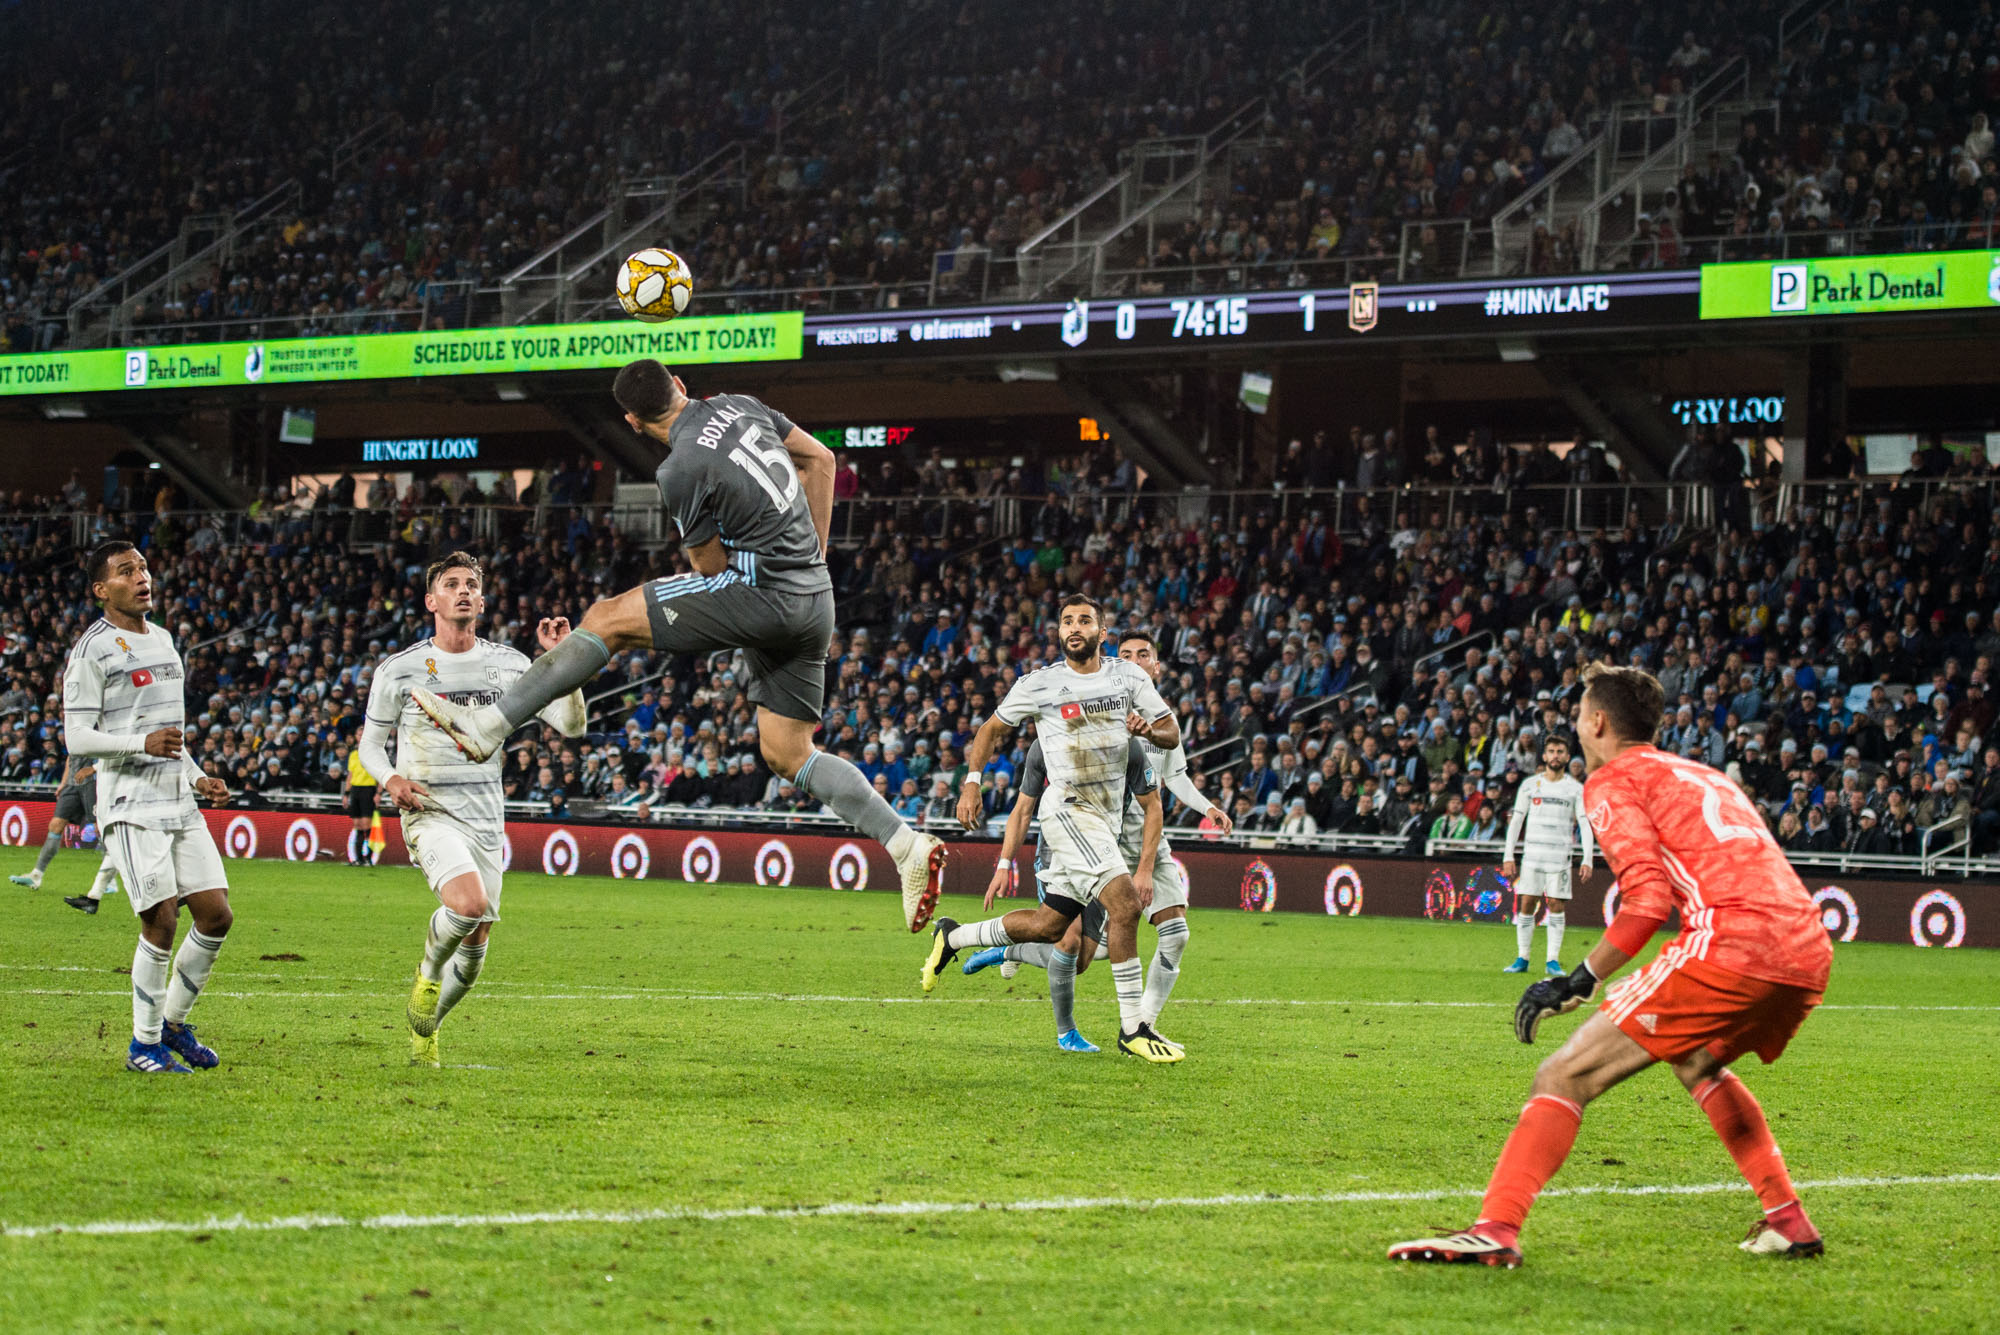 September 29, 2019 - Saint Paul, Minnesota, United States -Micheal Boxall scores a goal during an MLS match between Minnesota United and Los Angeles Football Club at Allianz Field (Photo: Tim C McLaughlin)